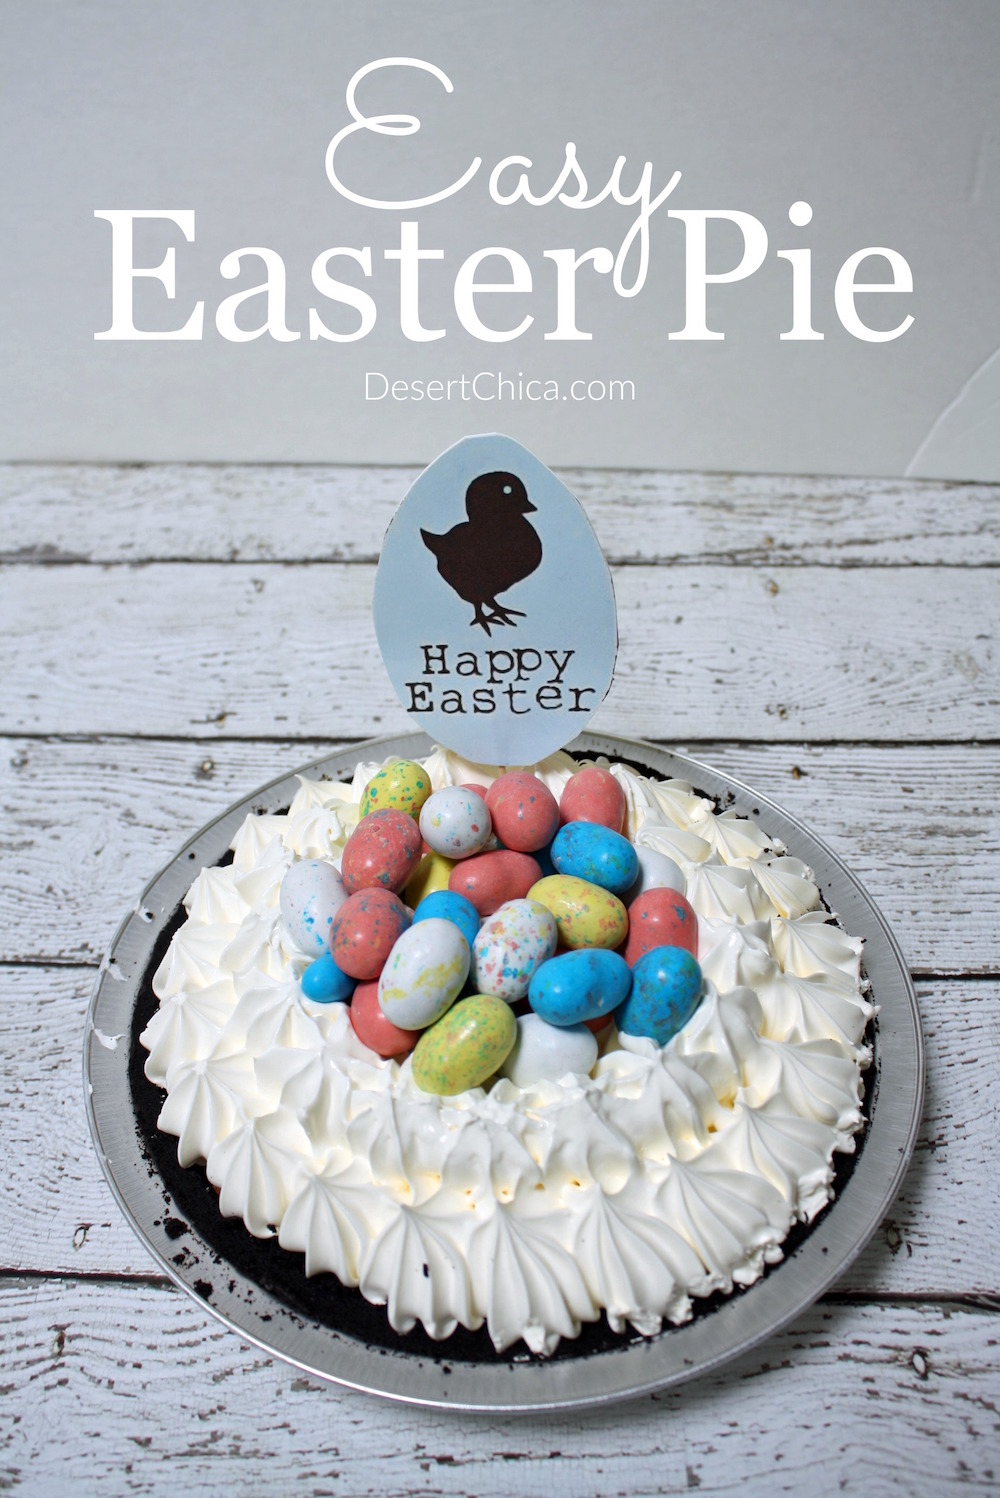 How to Make an Easy Easter Pie